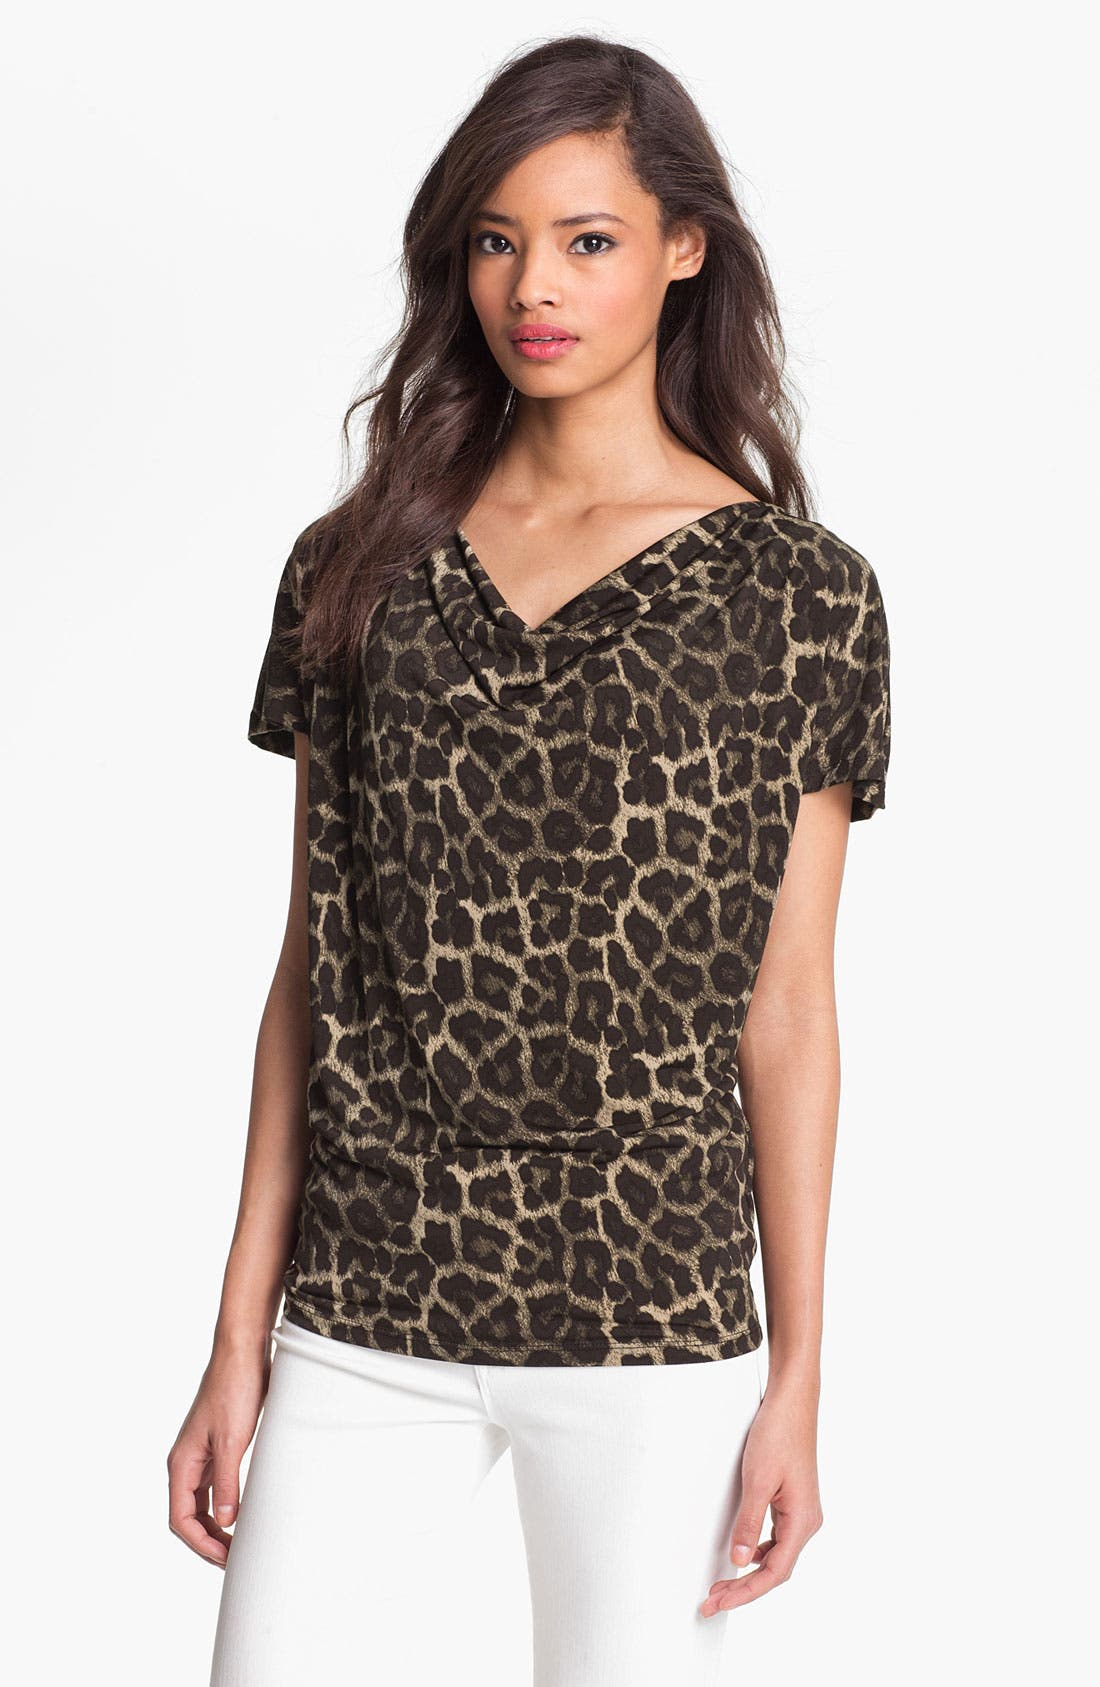 Alternate Image 1 Selected - MICHAEL Michael Kors 'Savannah' Leopard Print Top (Petite)